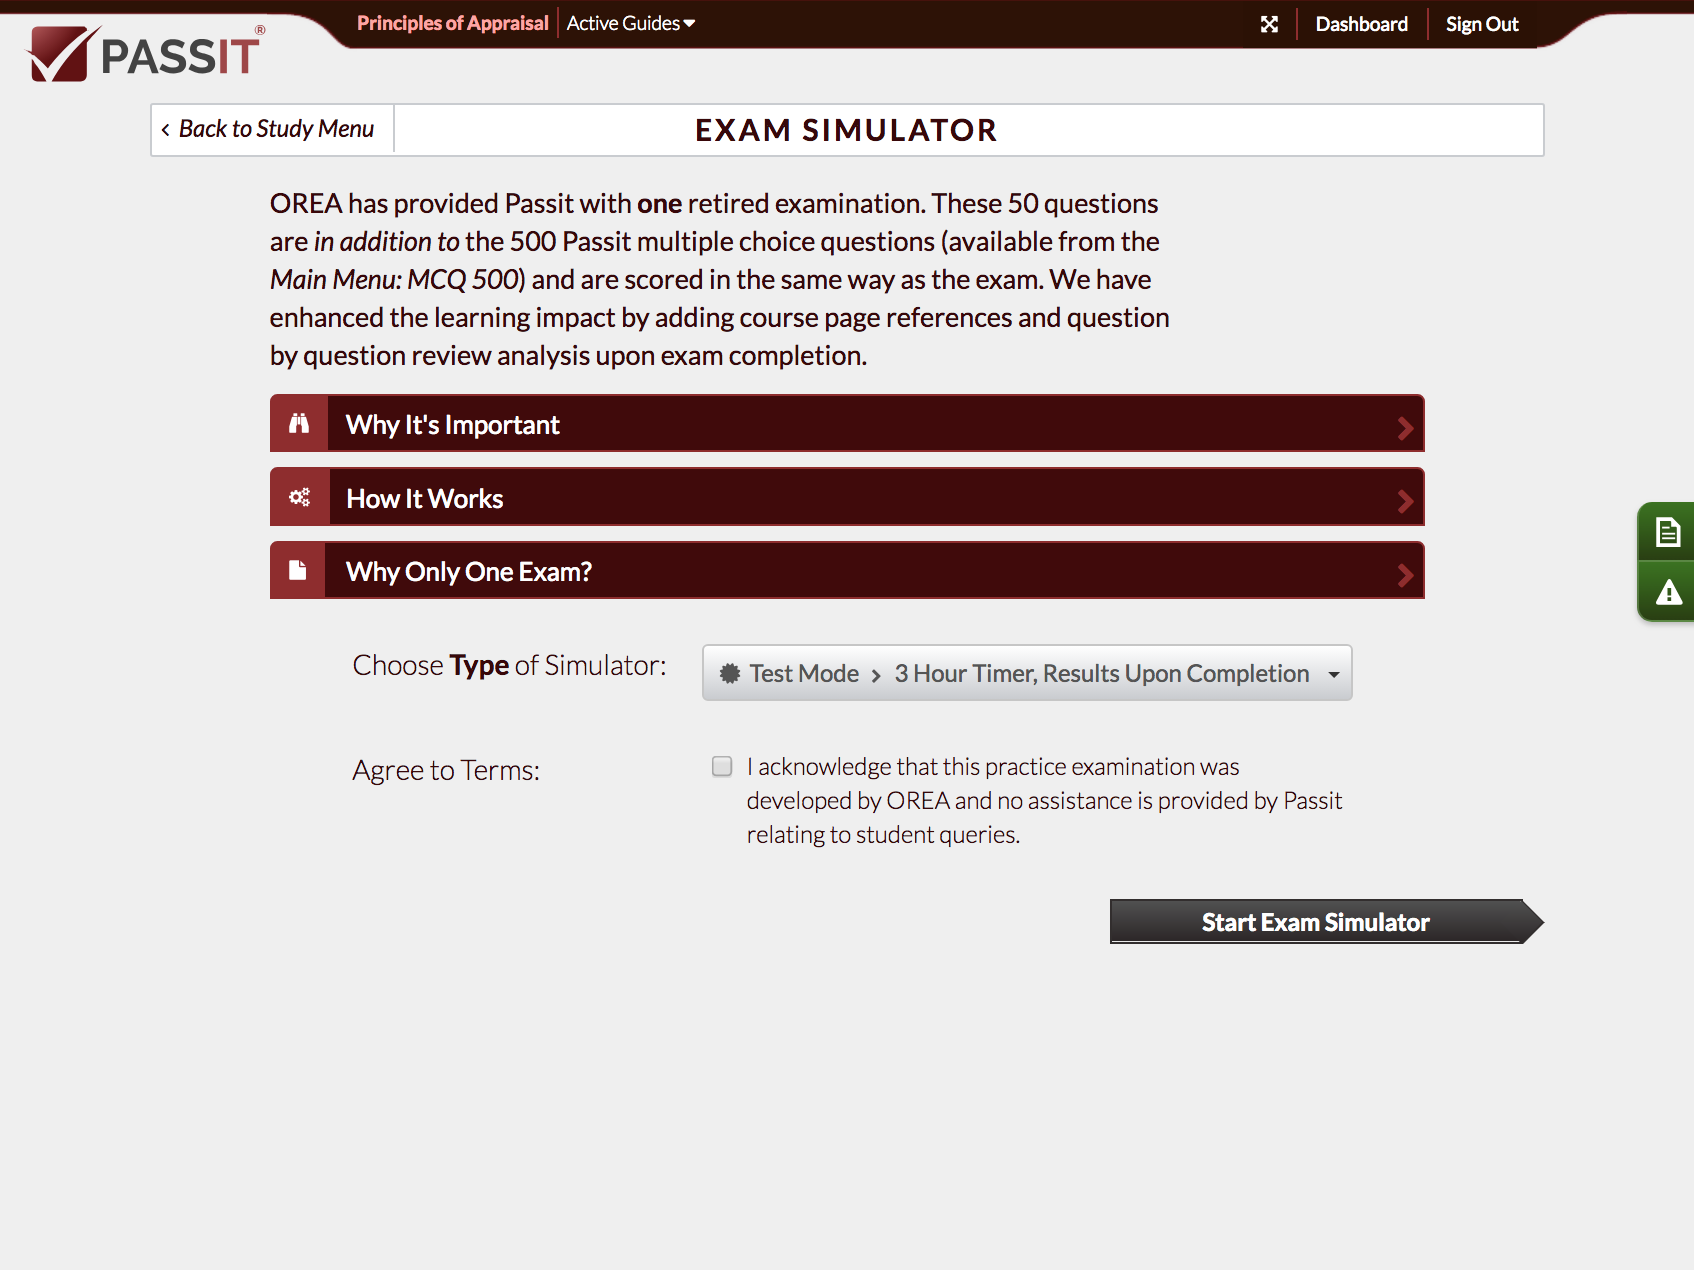 Screenshot of Exam Simulator Menu